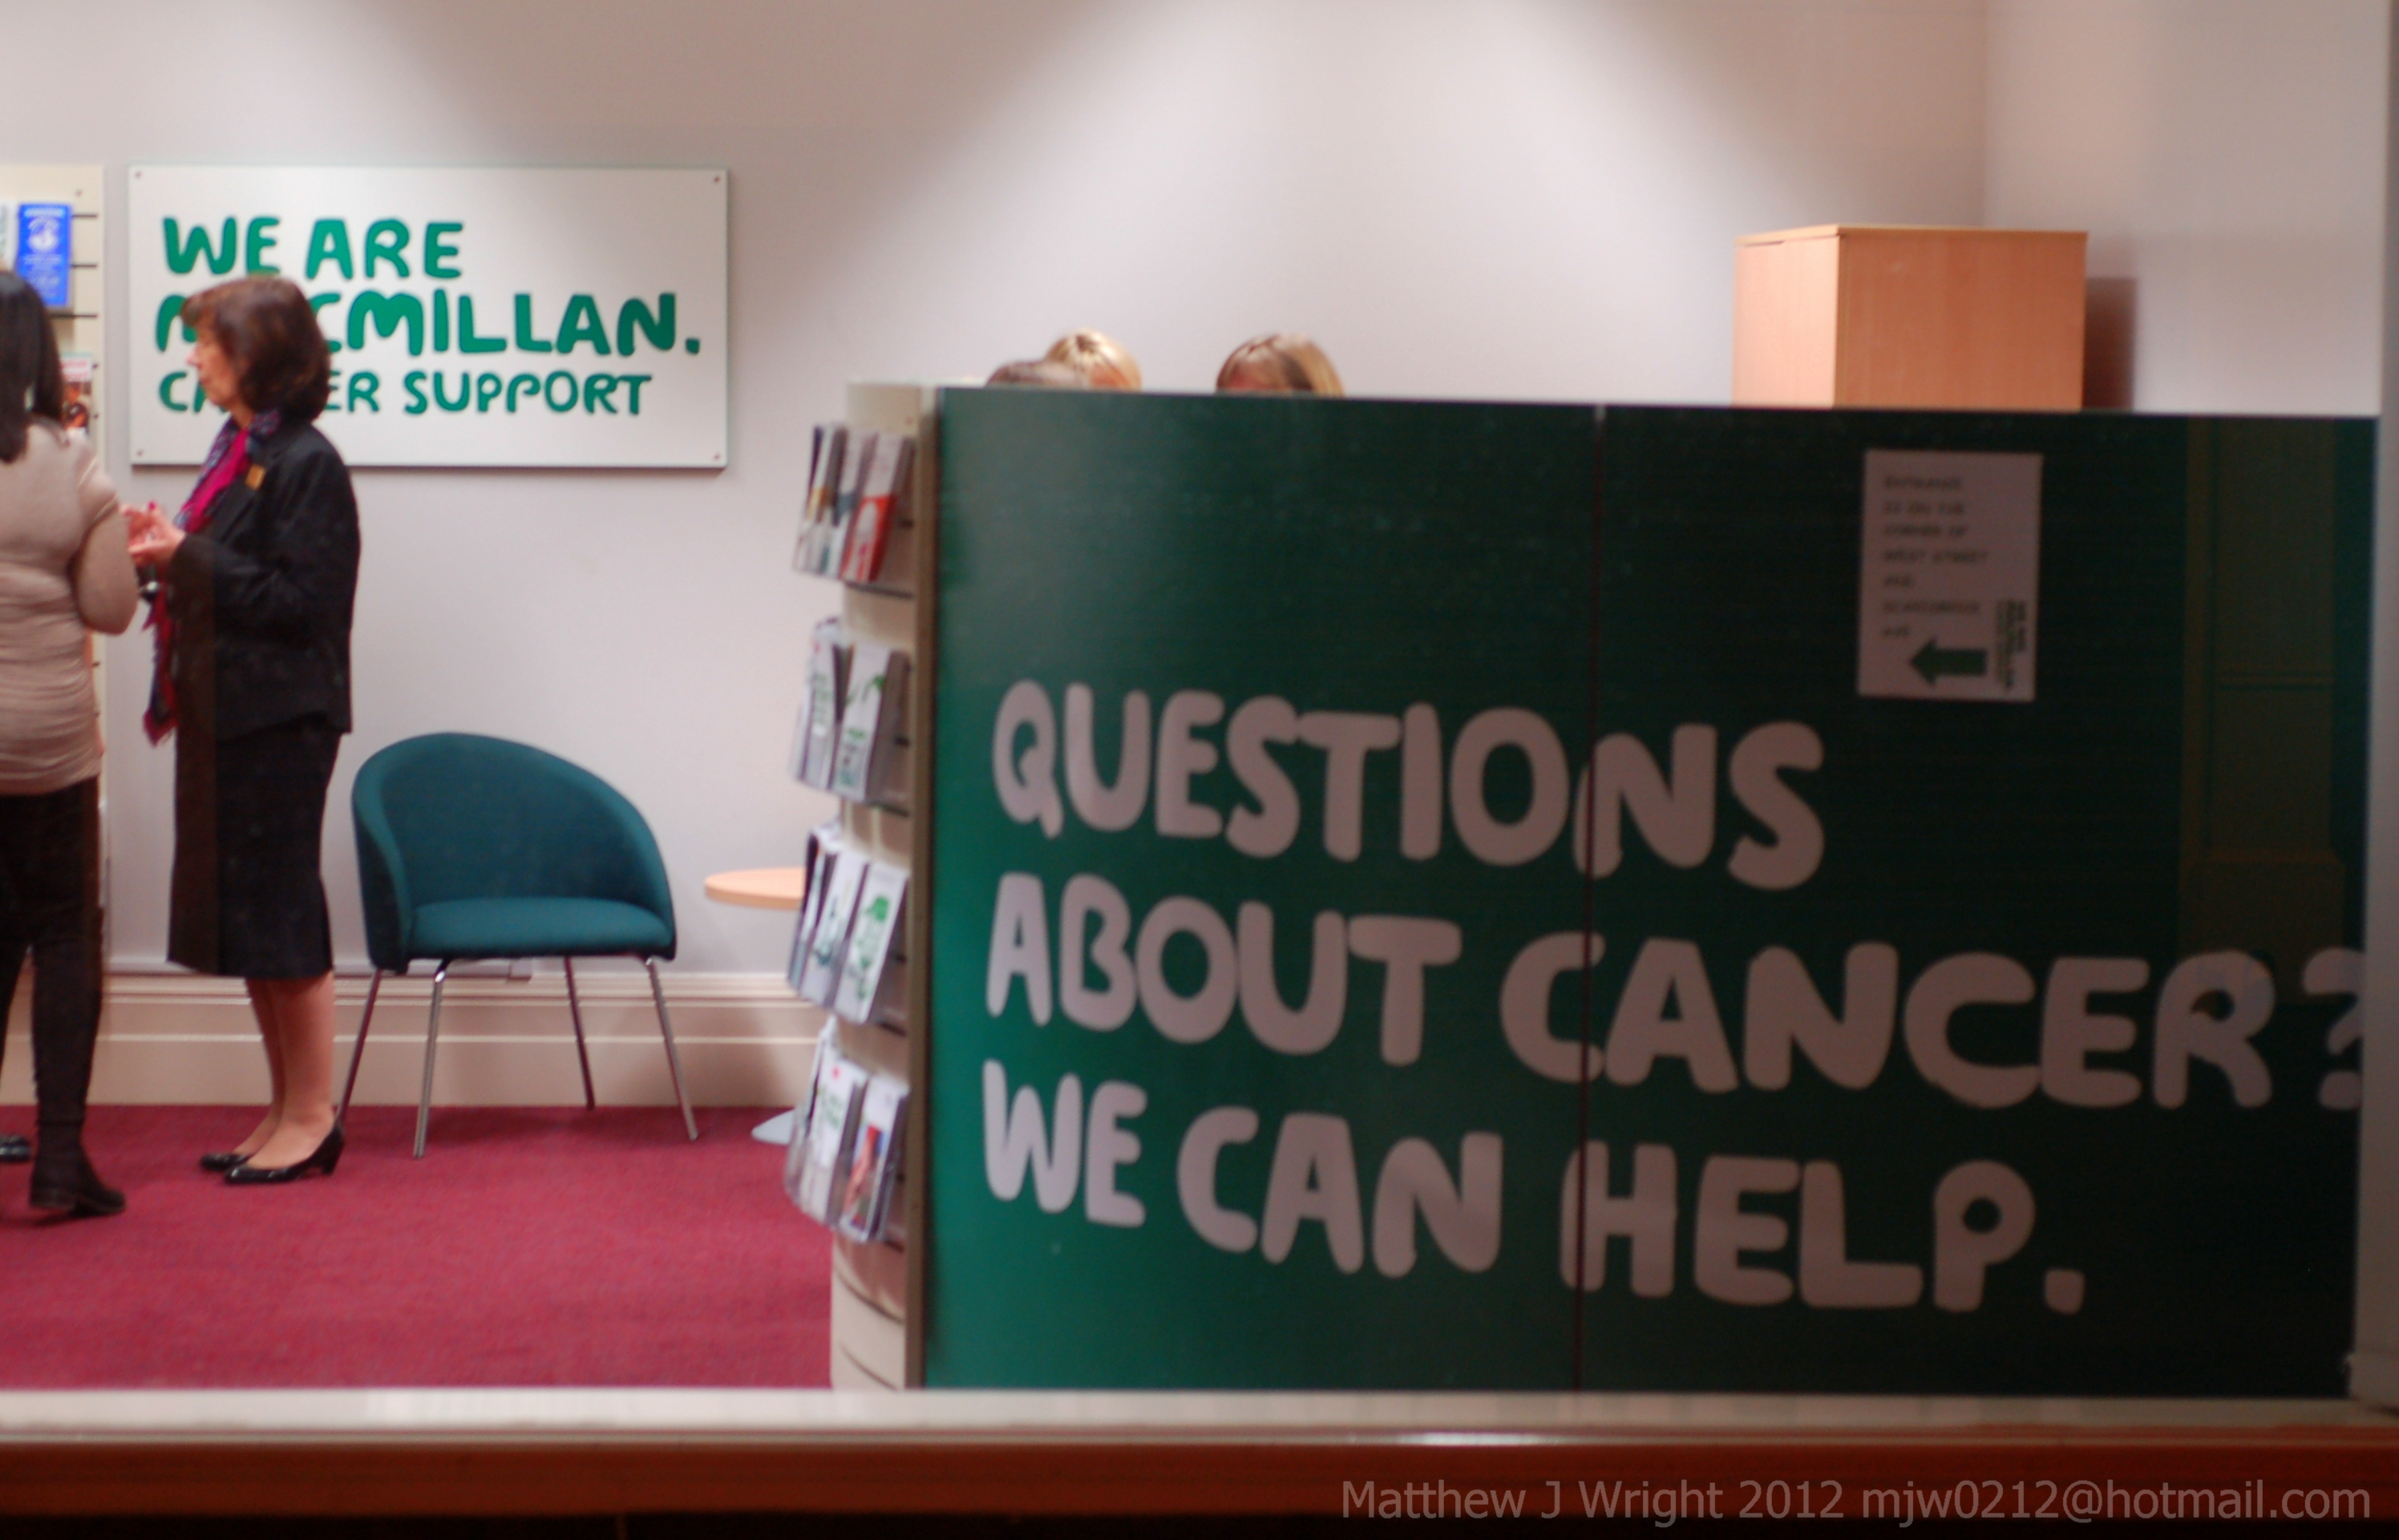 Southport Macmillan Cancer Information and Support Centre